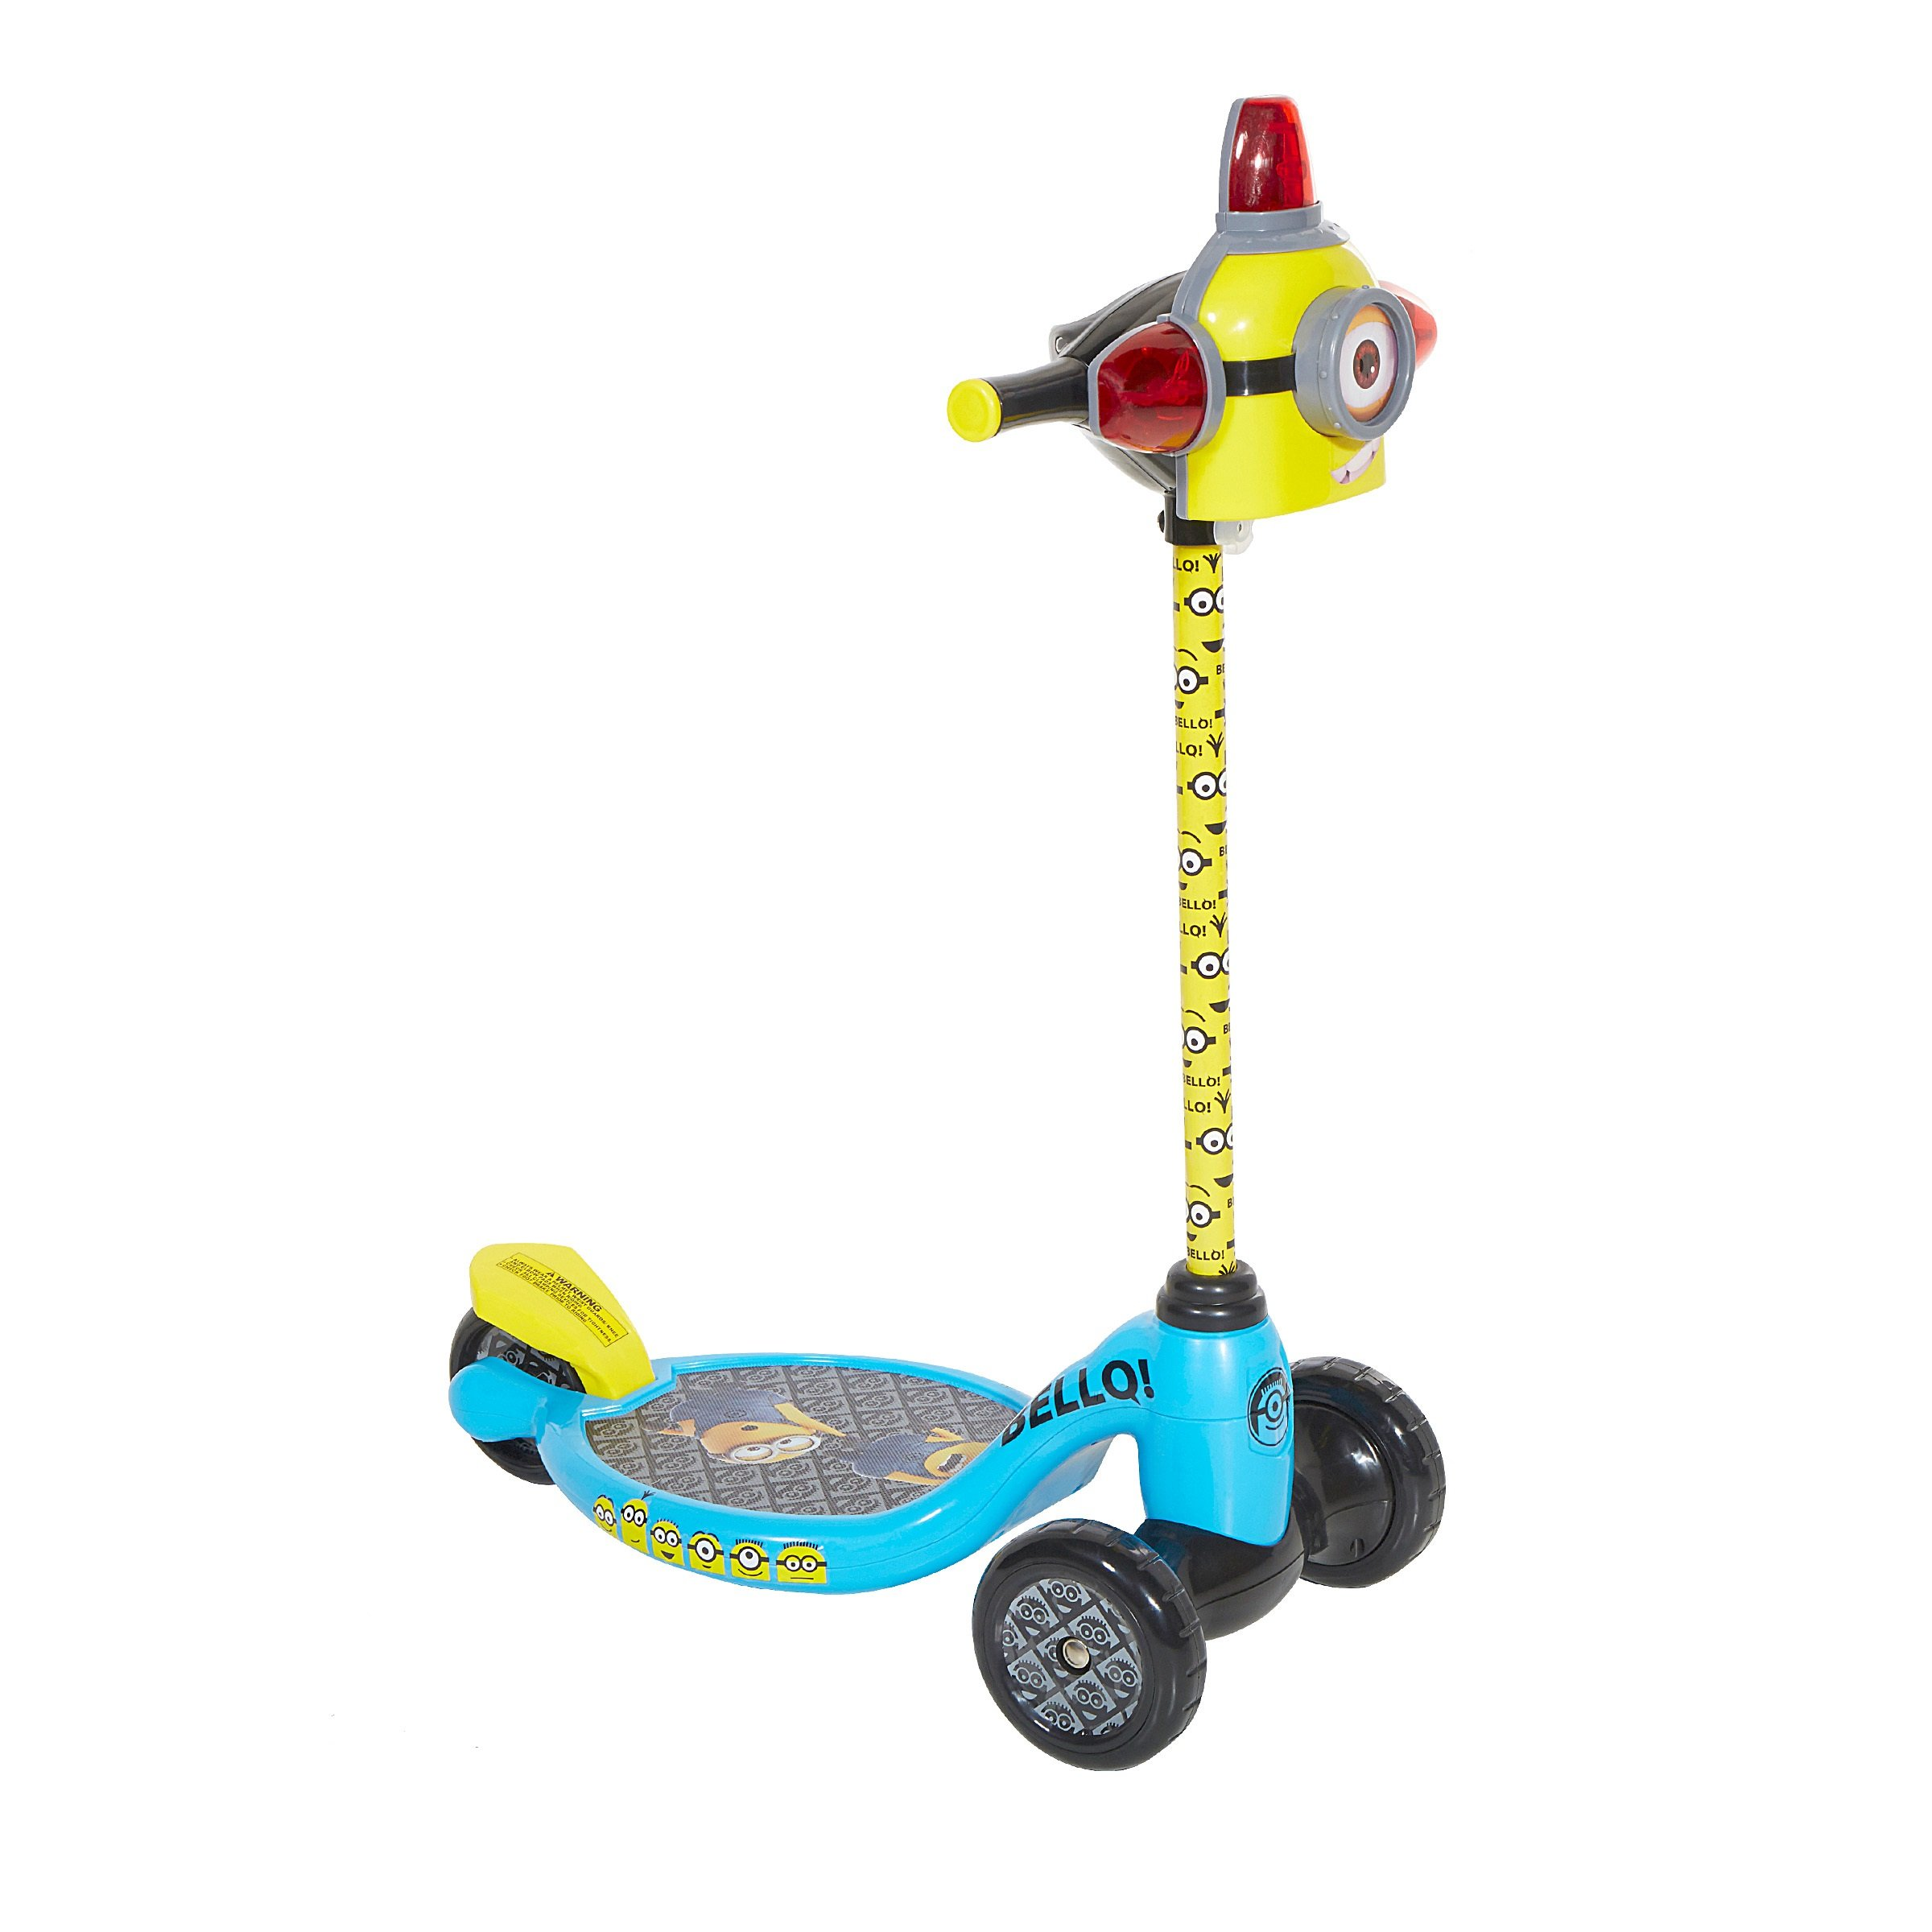 Minions 8004-01CY 3 Wheel Scooter, 5'', Yellow/Blue